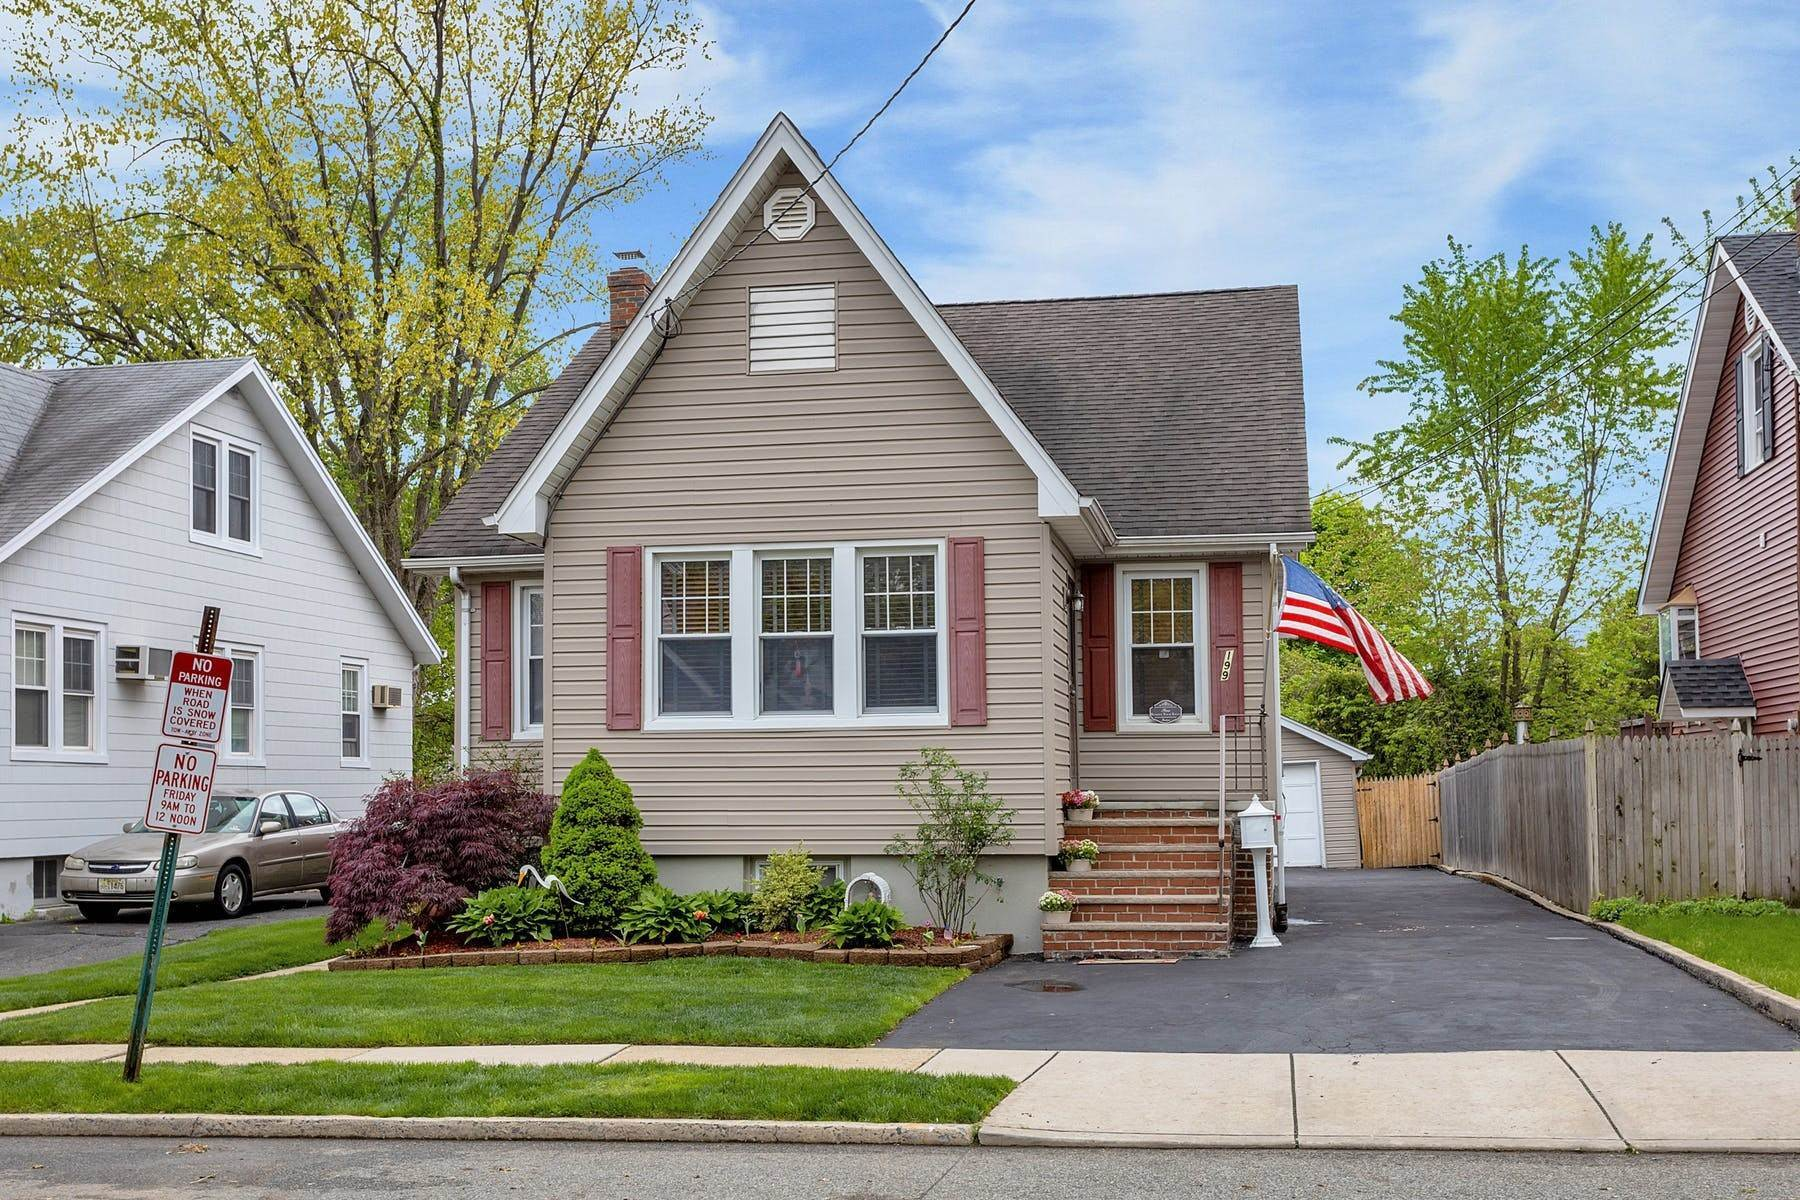 Single Family Homes for Sale at Welcome Home! 199 Brinkerhoff Street, Ridgefield Park, New Jersey 07660 United States